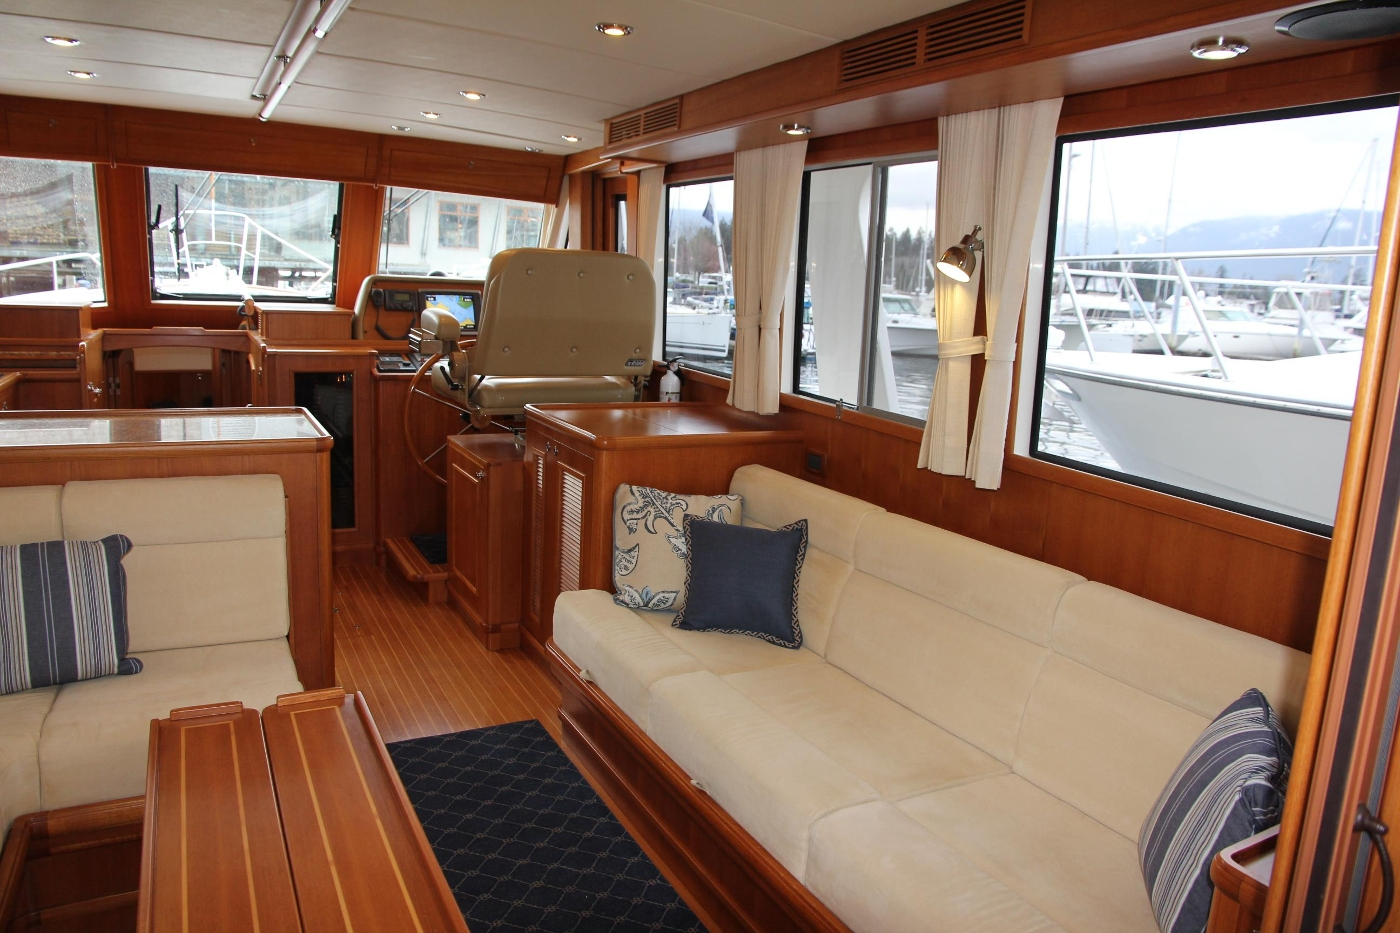 2009 Grand Banks 47 Europa, Starboard Settee Forward